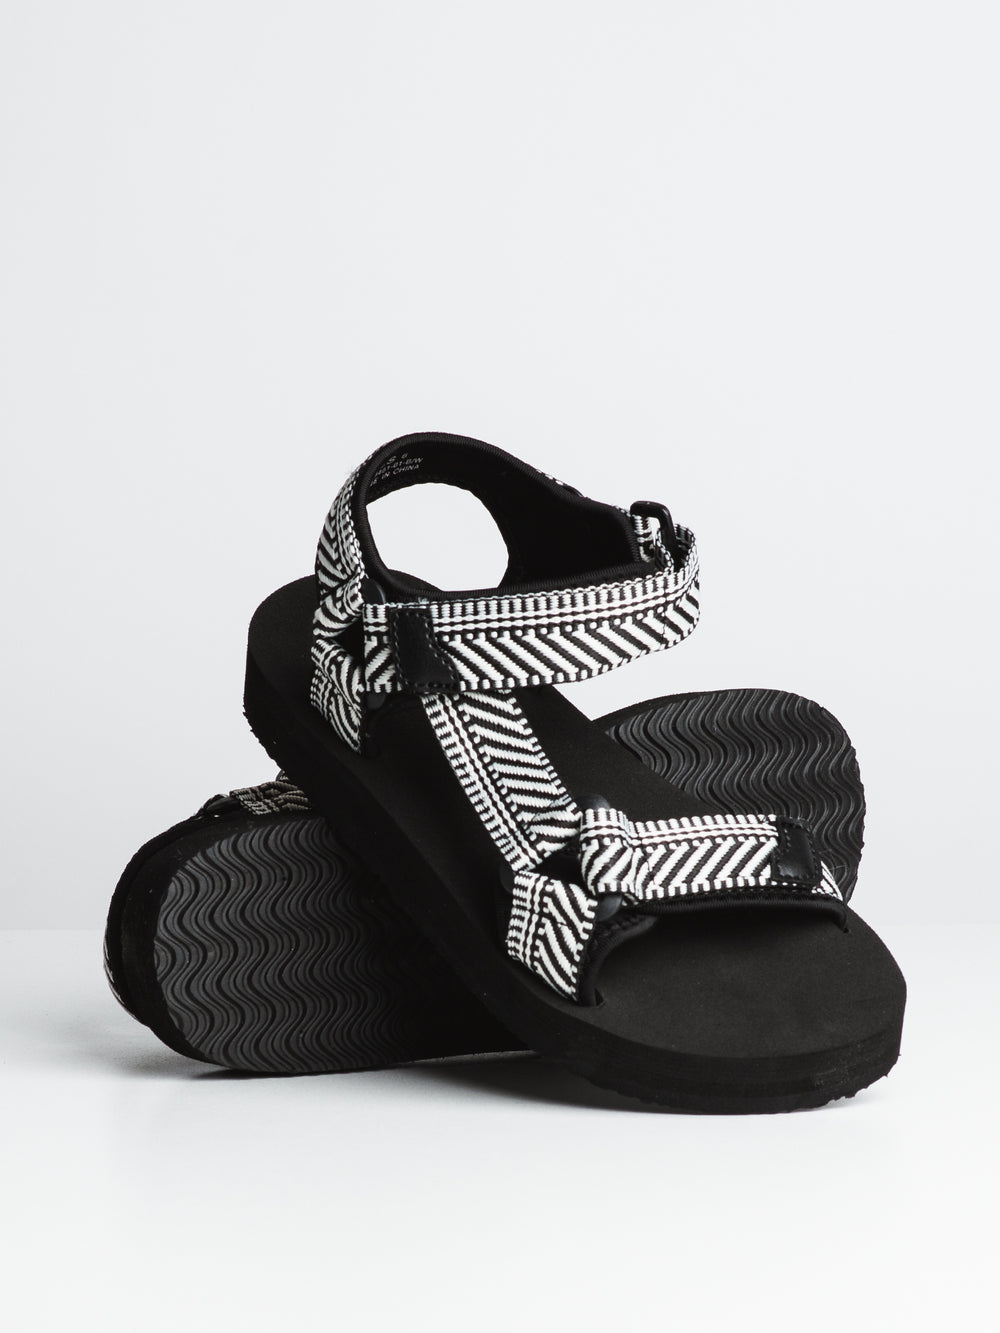 WOMENS NIVI - BLACK/WHITE-D2